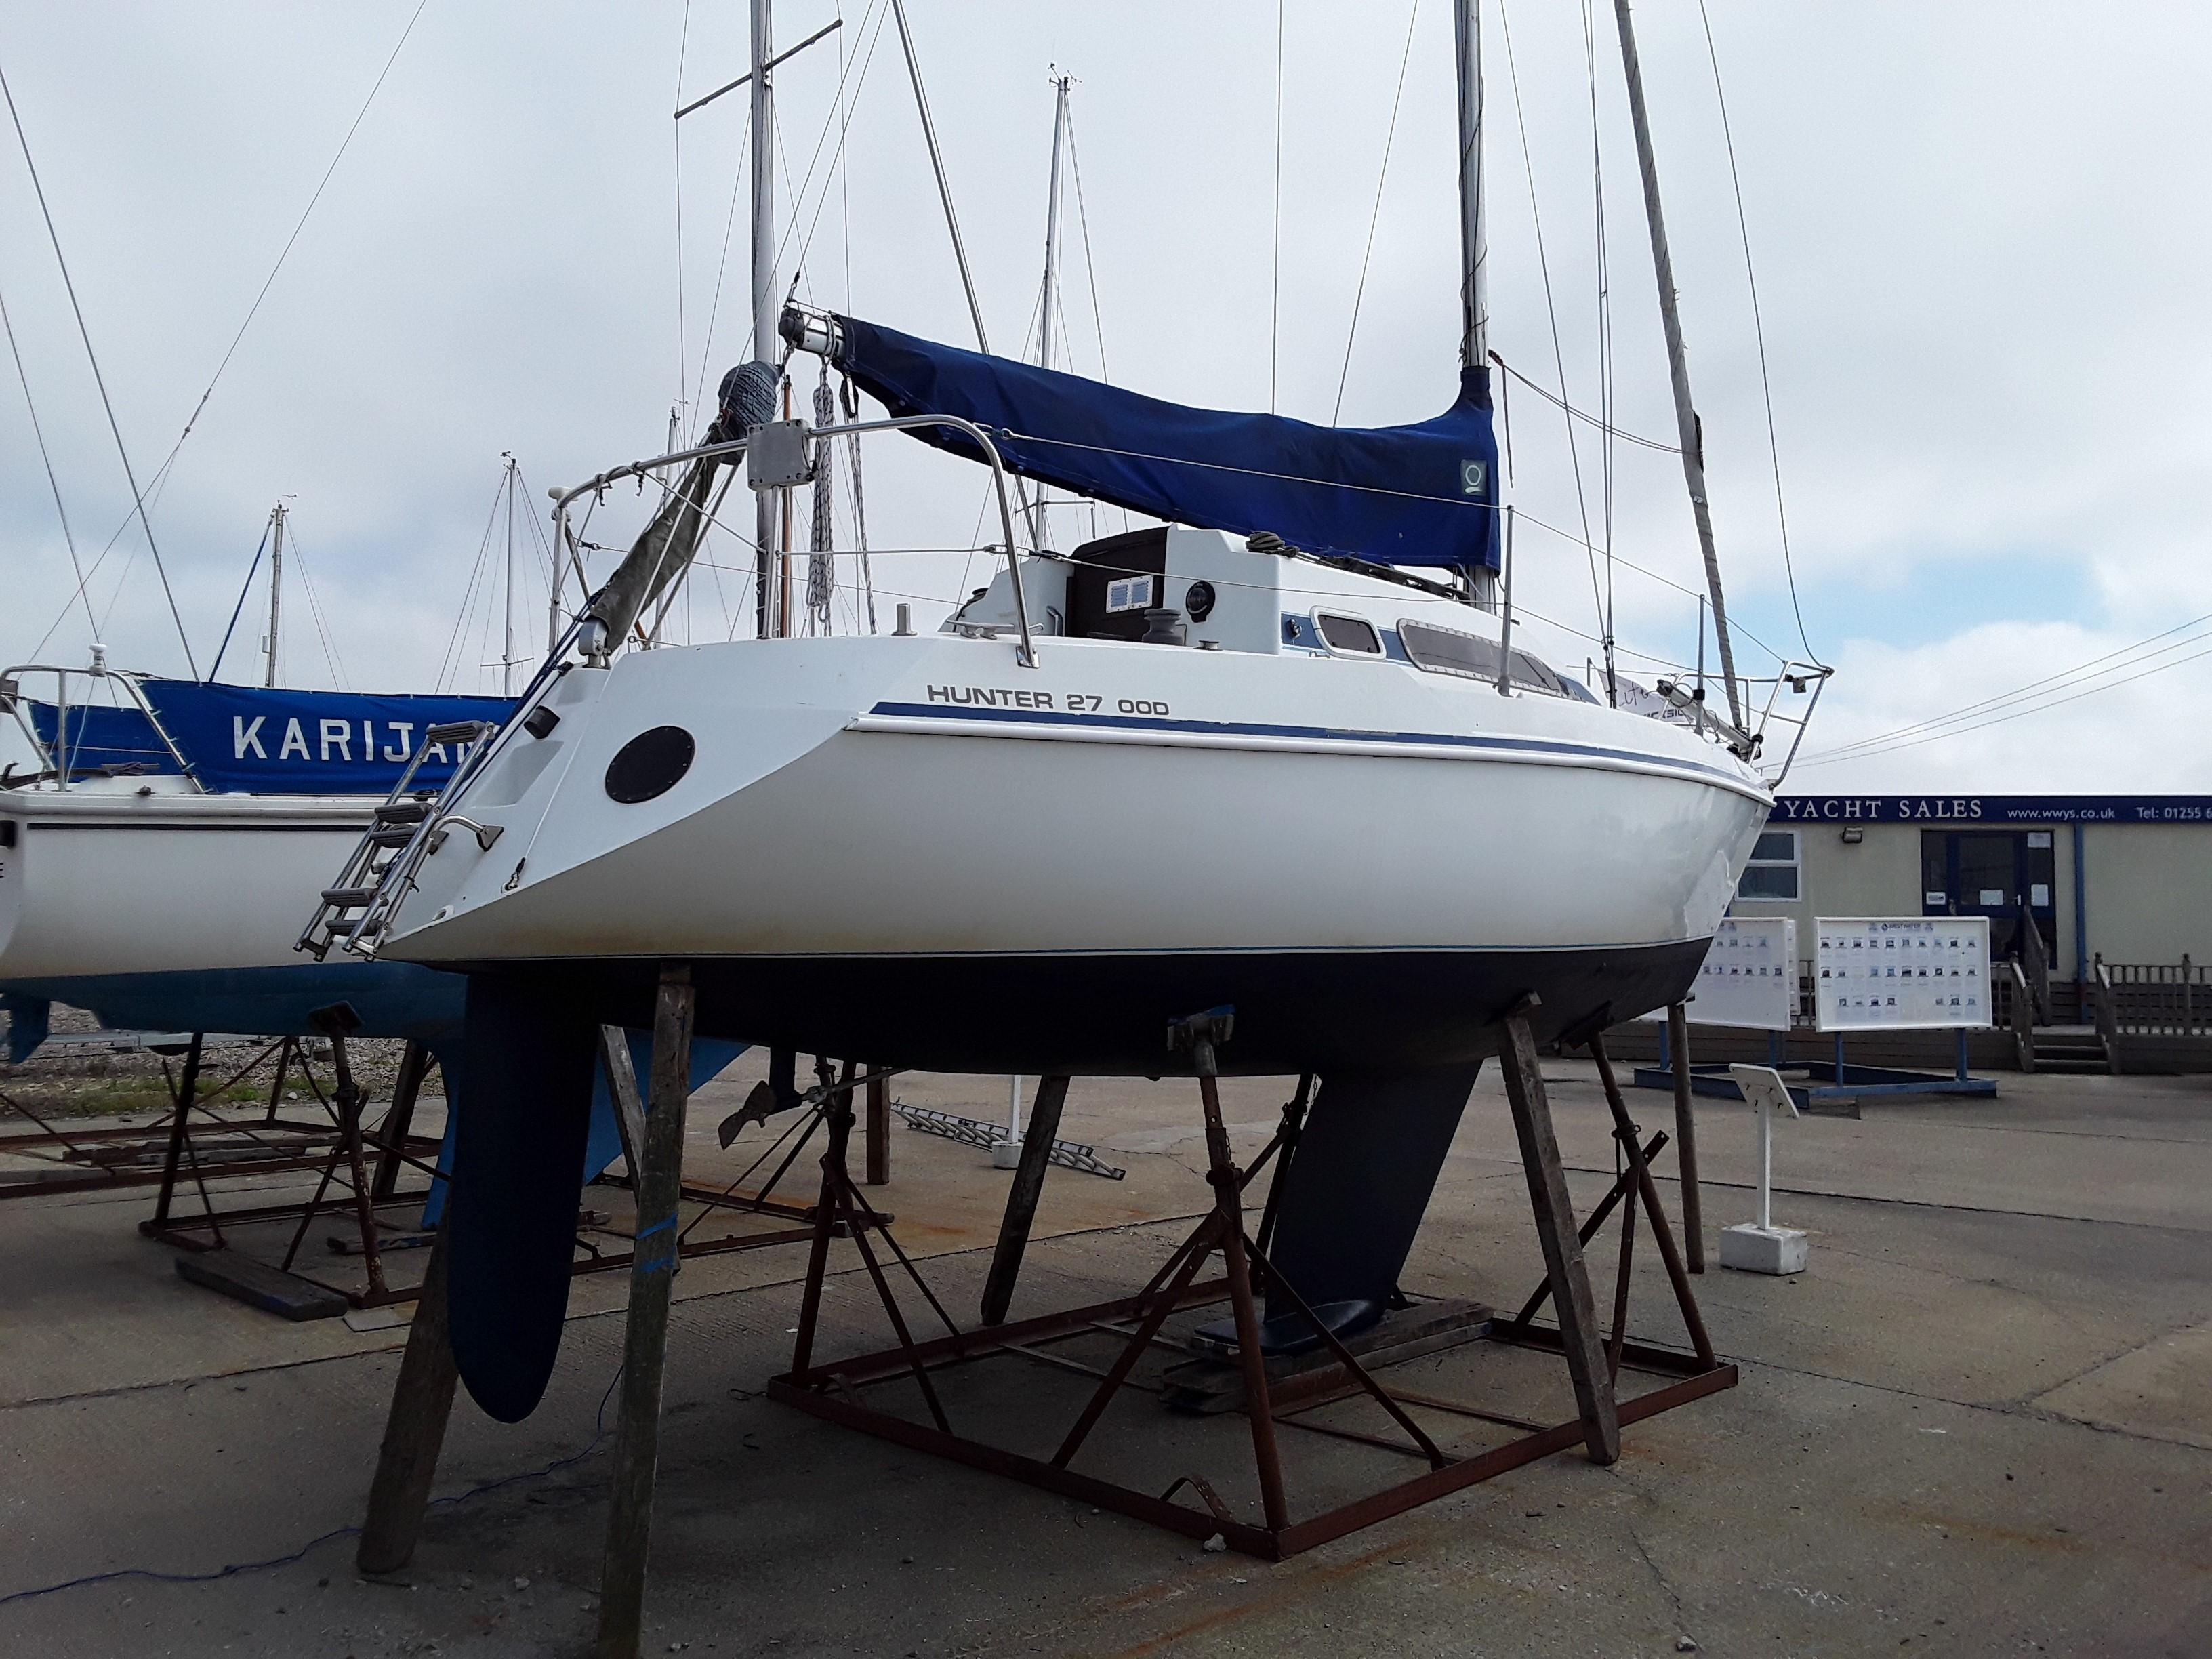 Hunter 27 OOD boat for sale - Westwater Yacht Sales